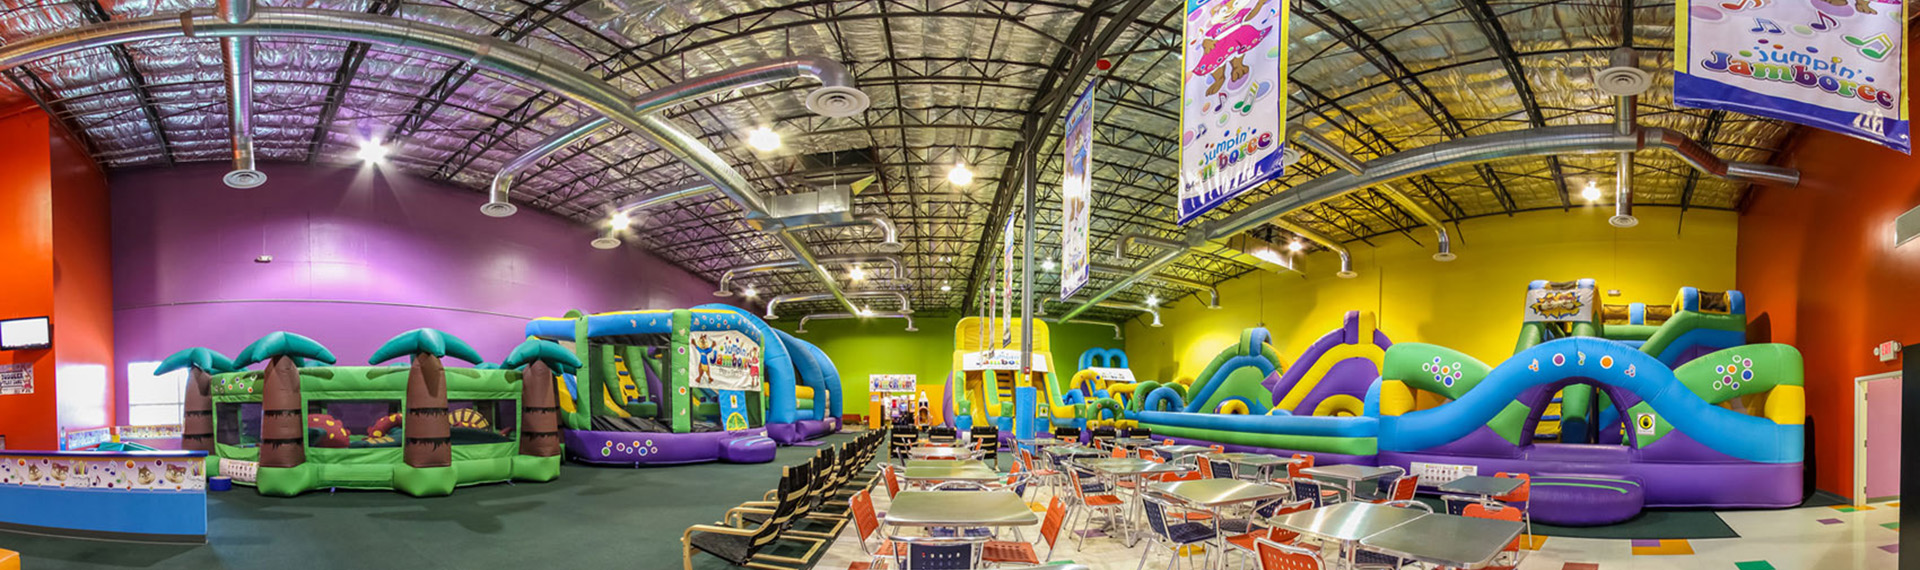 Inflatable Party Centers